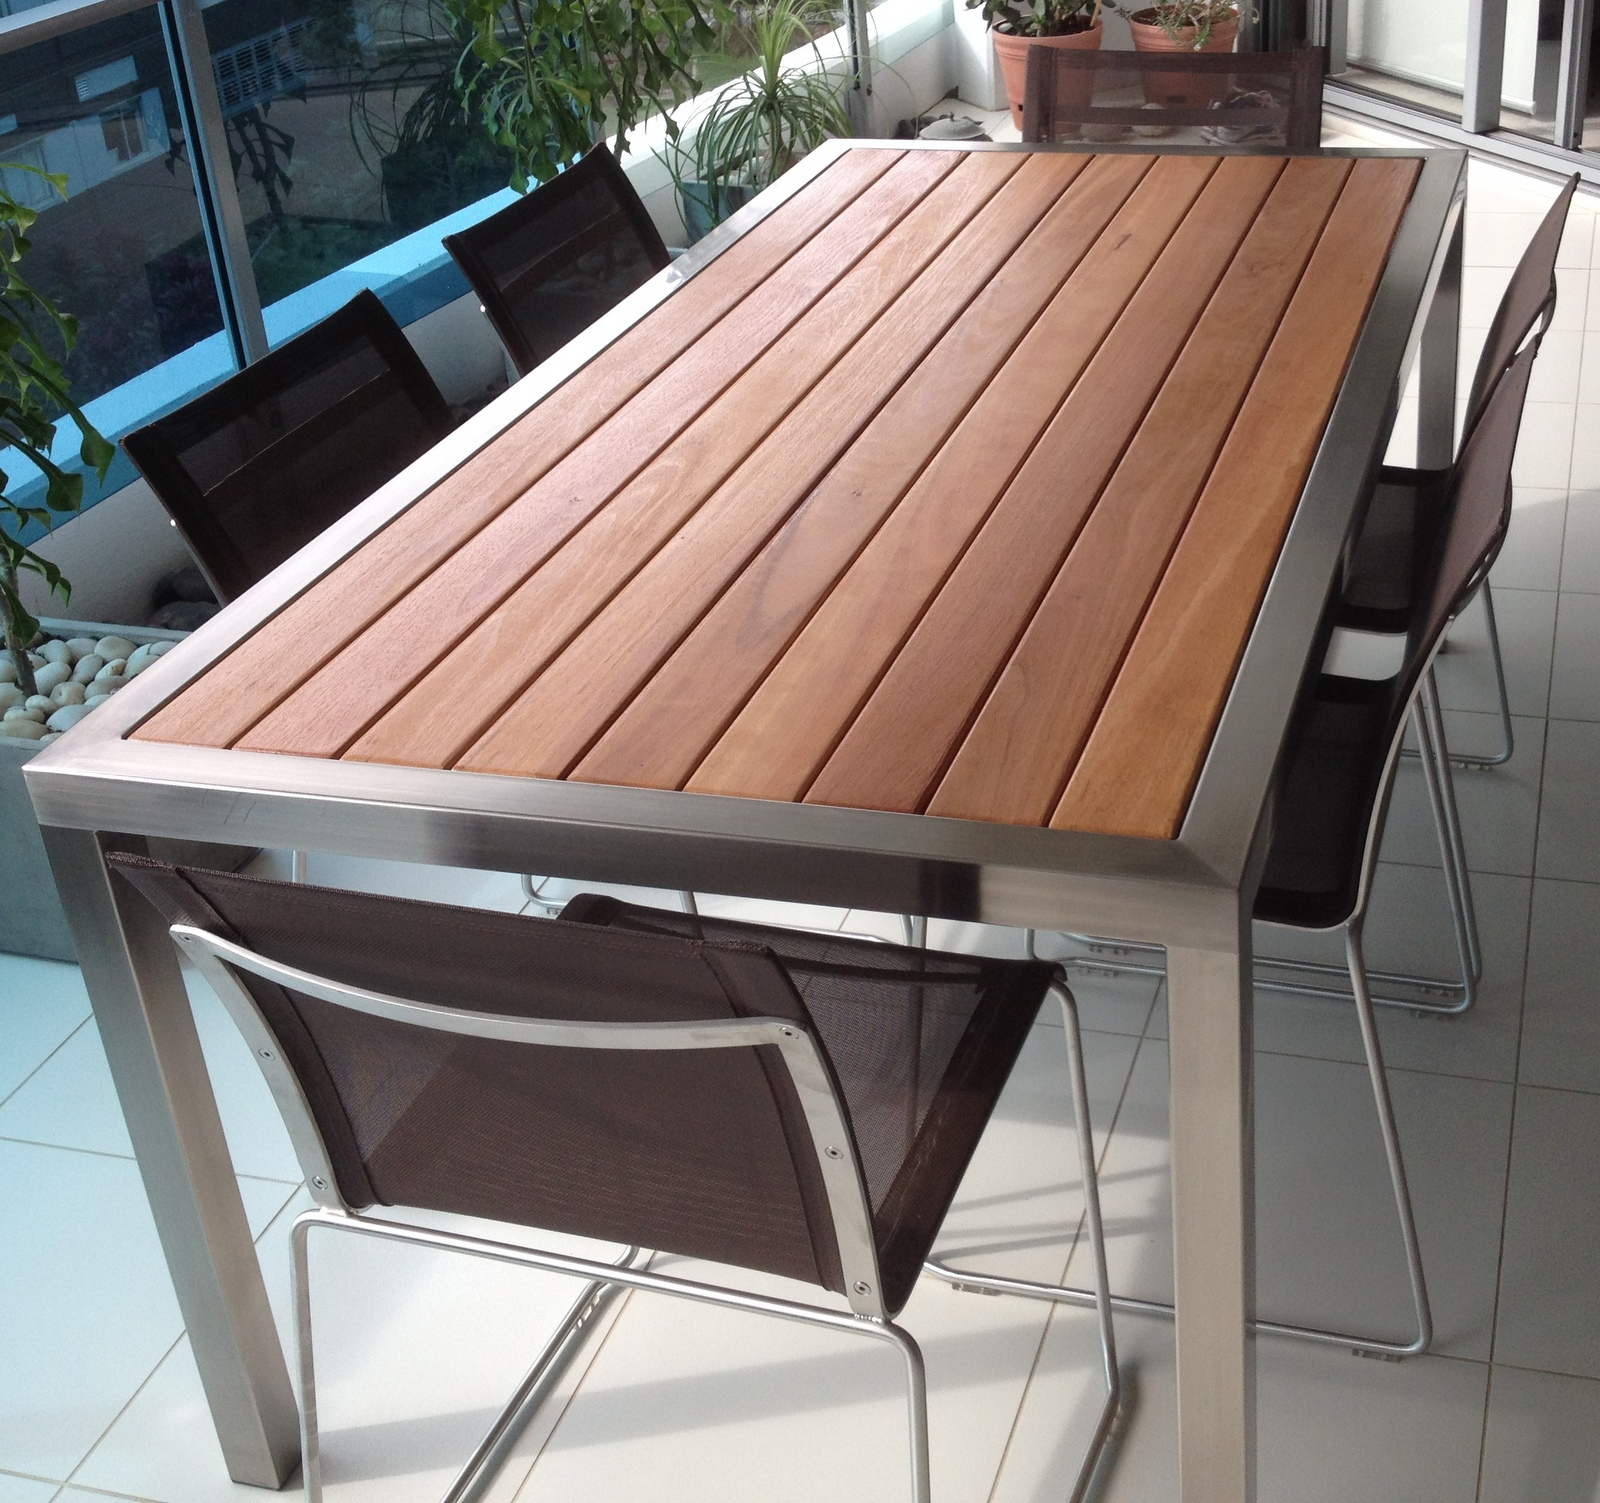 metal outdoor table and chairs australia full massage chair galaxy with benches dining tables brisbane agfc